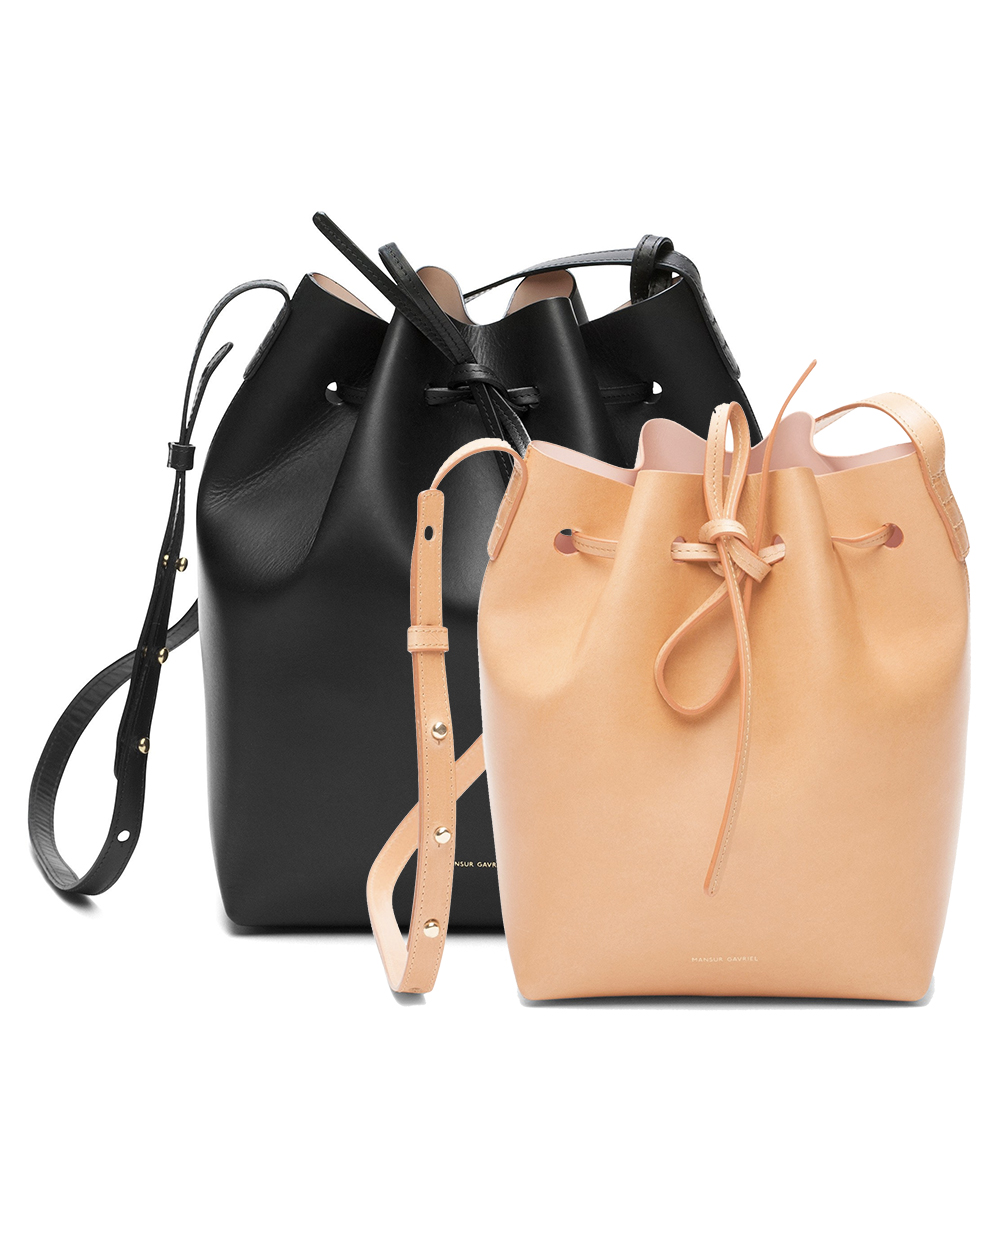 The-Bag-Freak-Mansur-Gavriel-Bucket-Bag